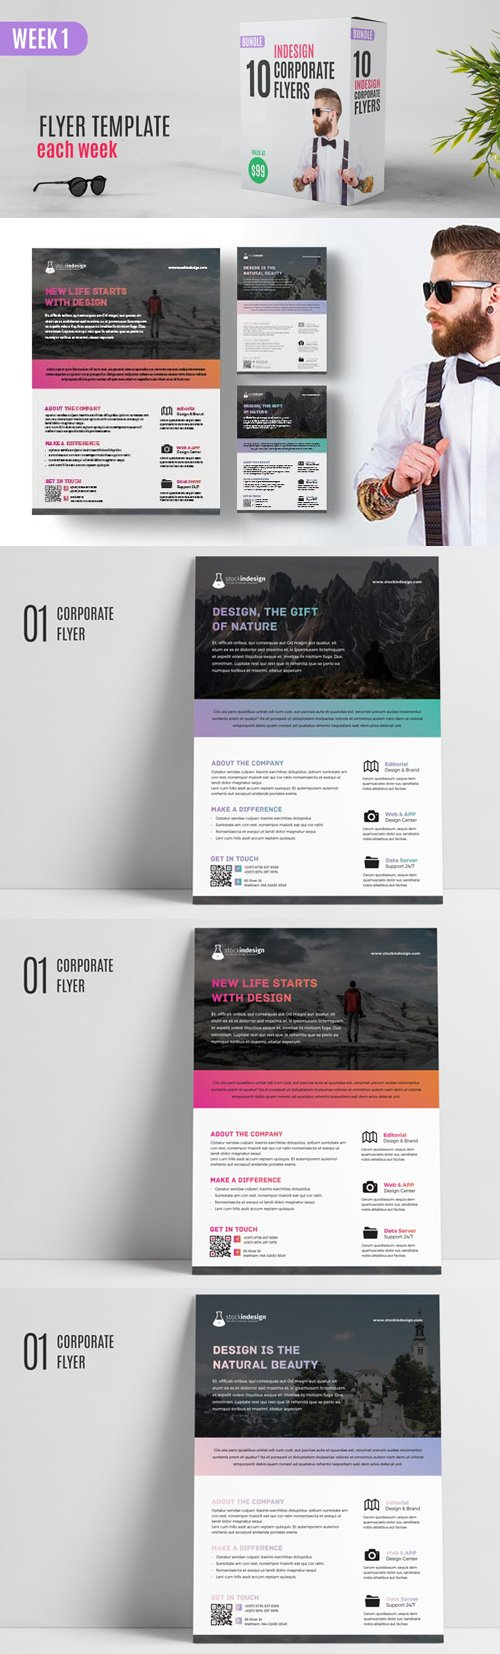 Corporate Flyer Indesign Template 1 (Week 1)